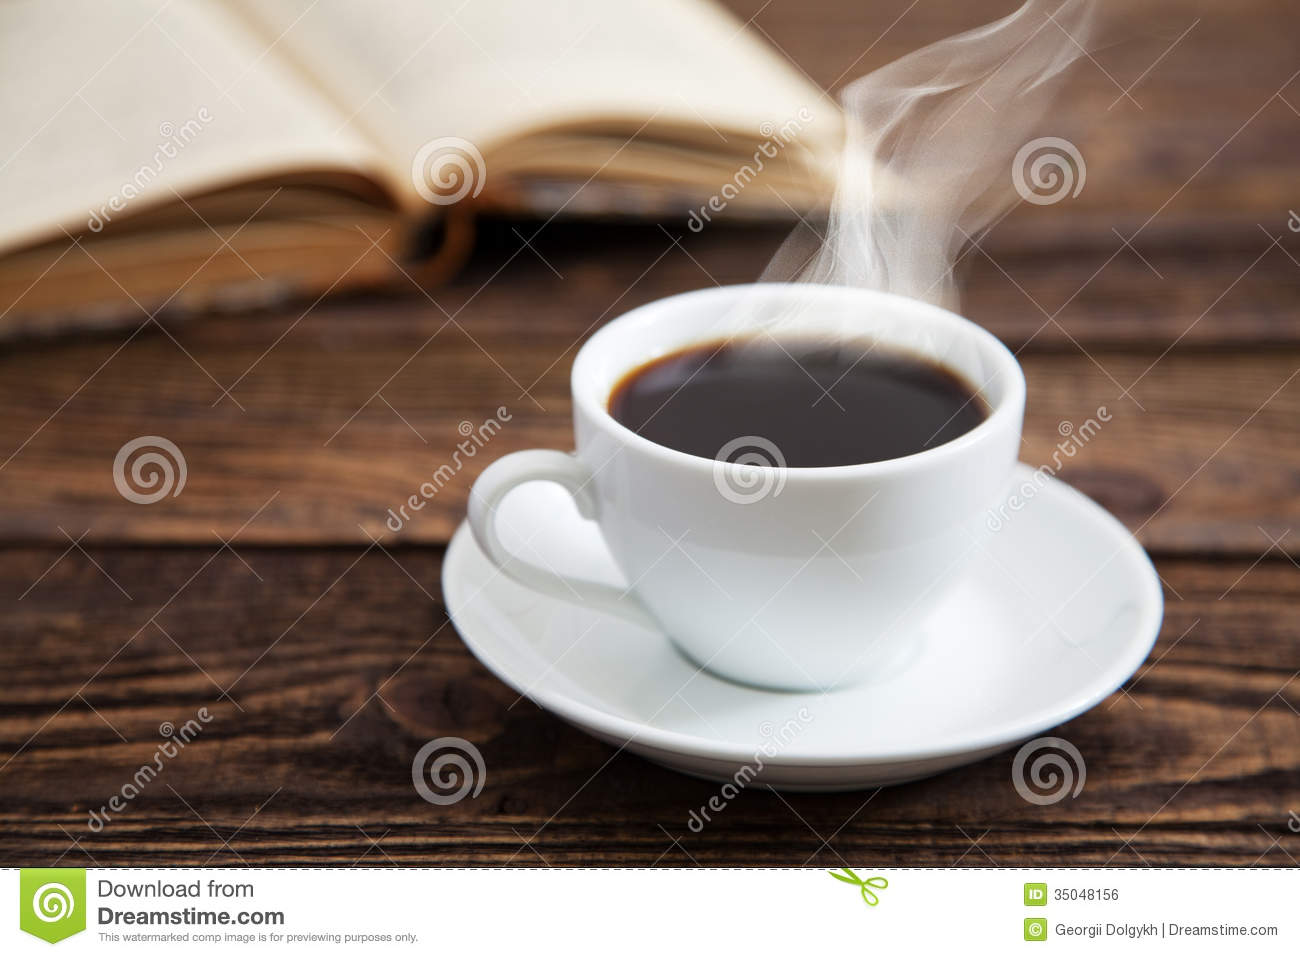 Cup Of Coffee And A Book Royalty Free Stock Image - Image: 35048156